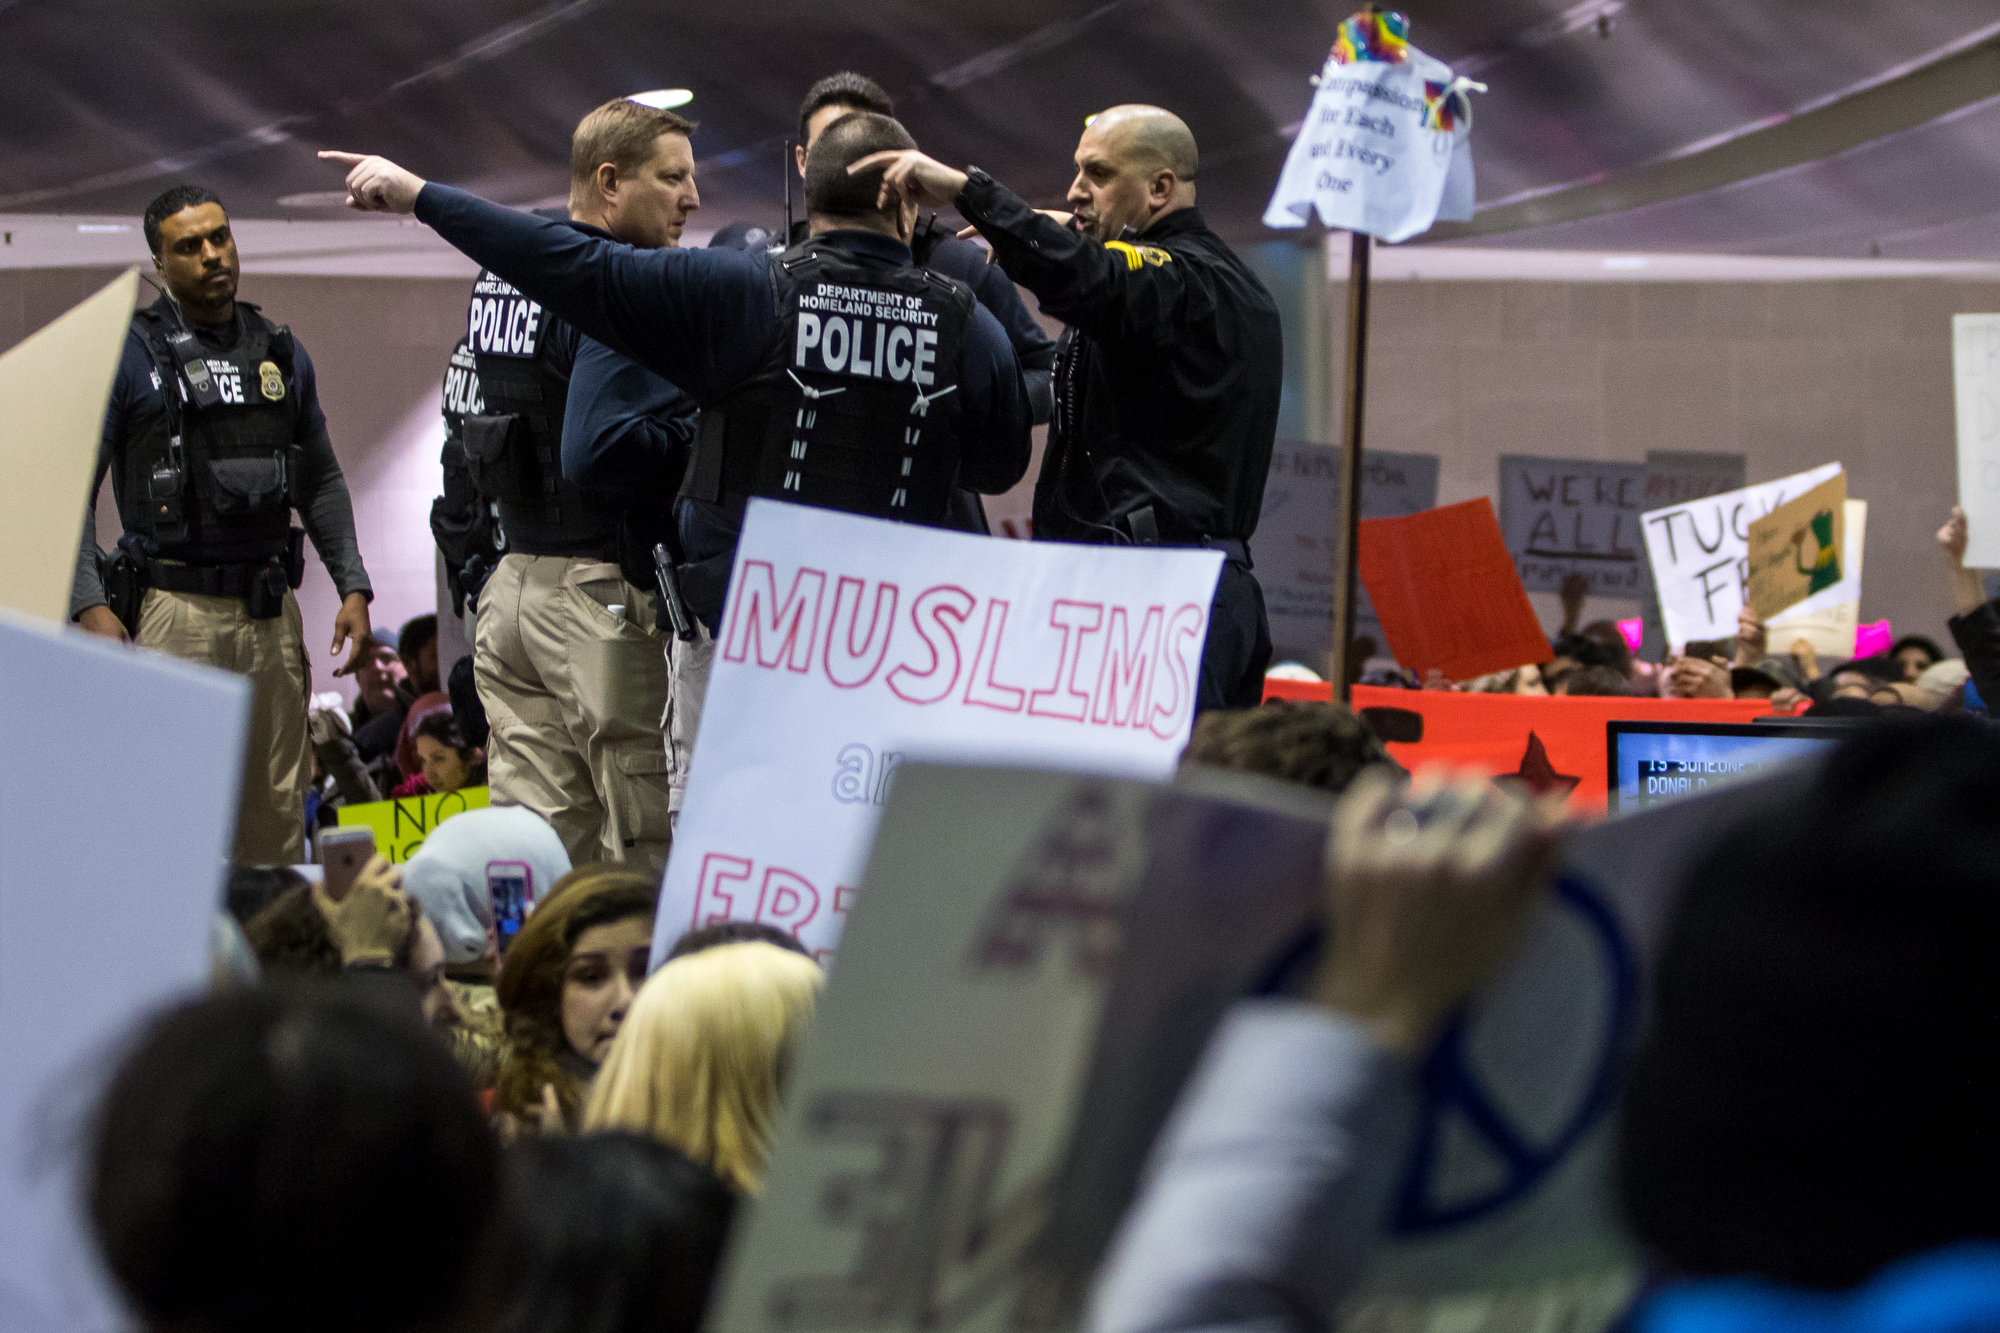 Police stand guard as thousands packed into the baggage claim at Detroit International Airport to protest President Trump and his immigration policy on Sunday, January 29, 2017. Matt Weigand | The Ann Arbor NewsMatt Weigand | The Ann Arbor News